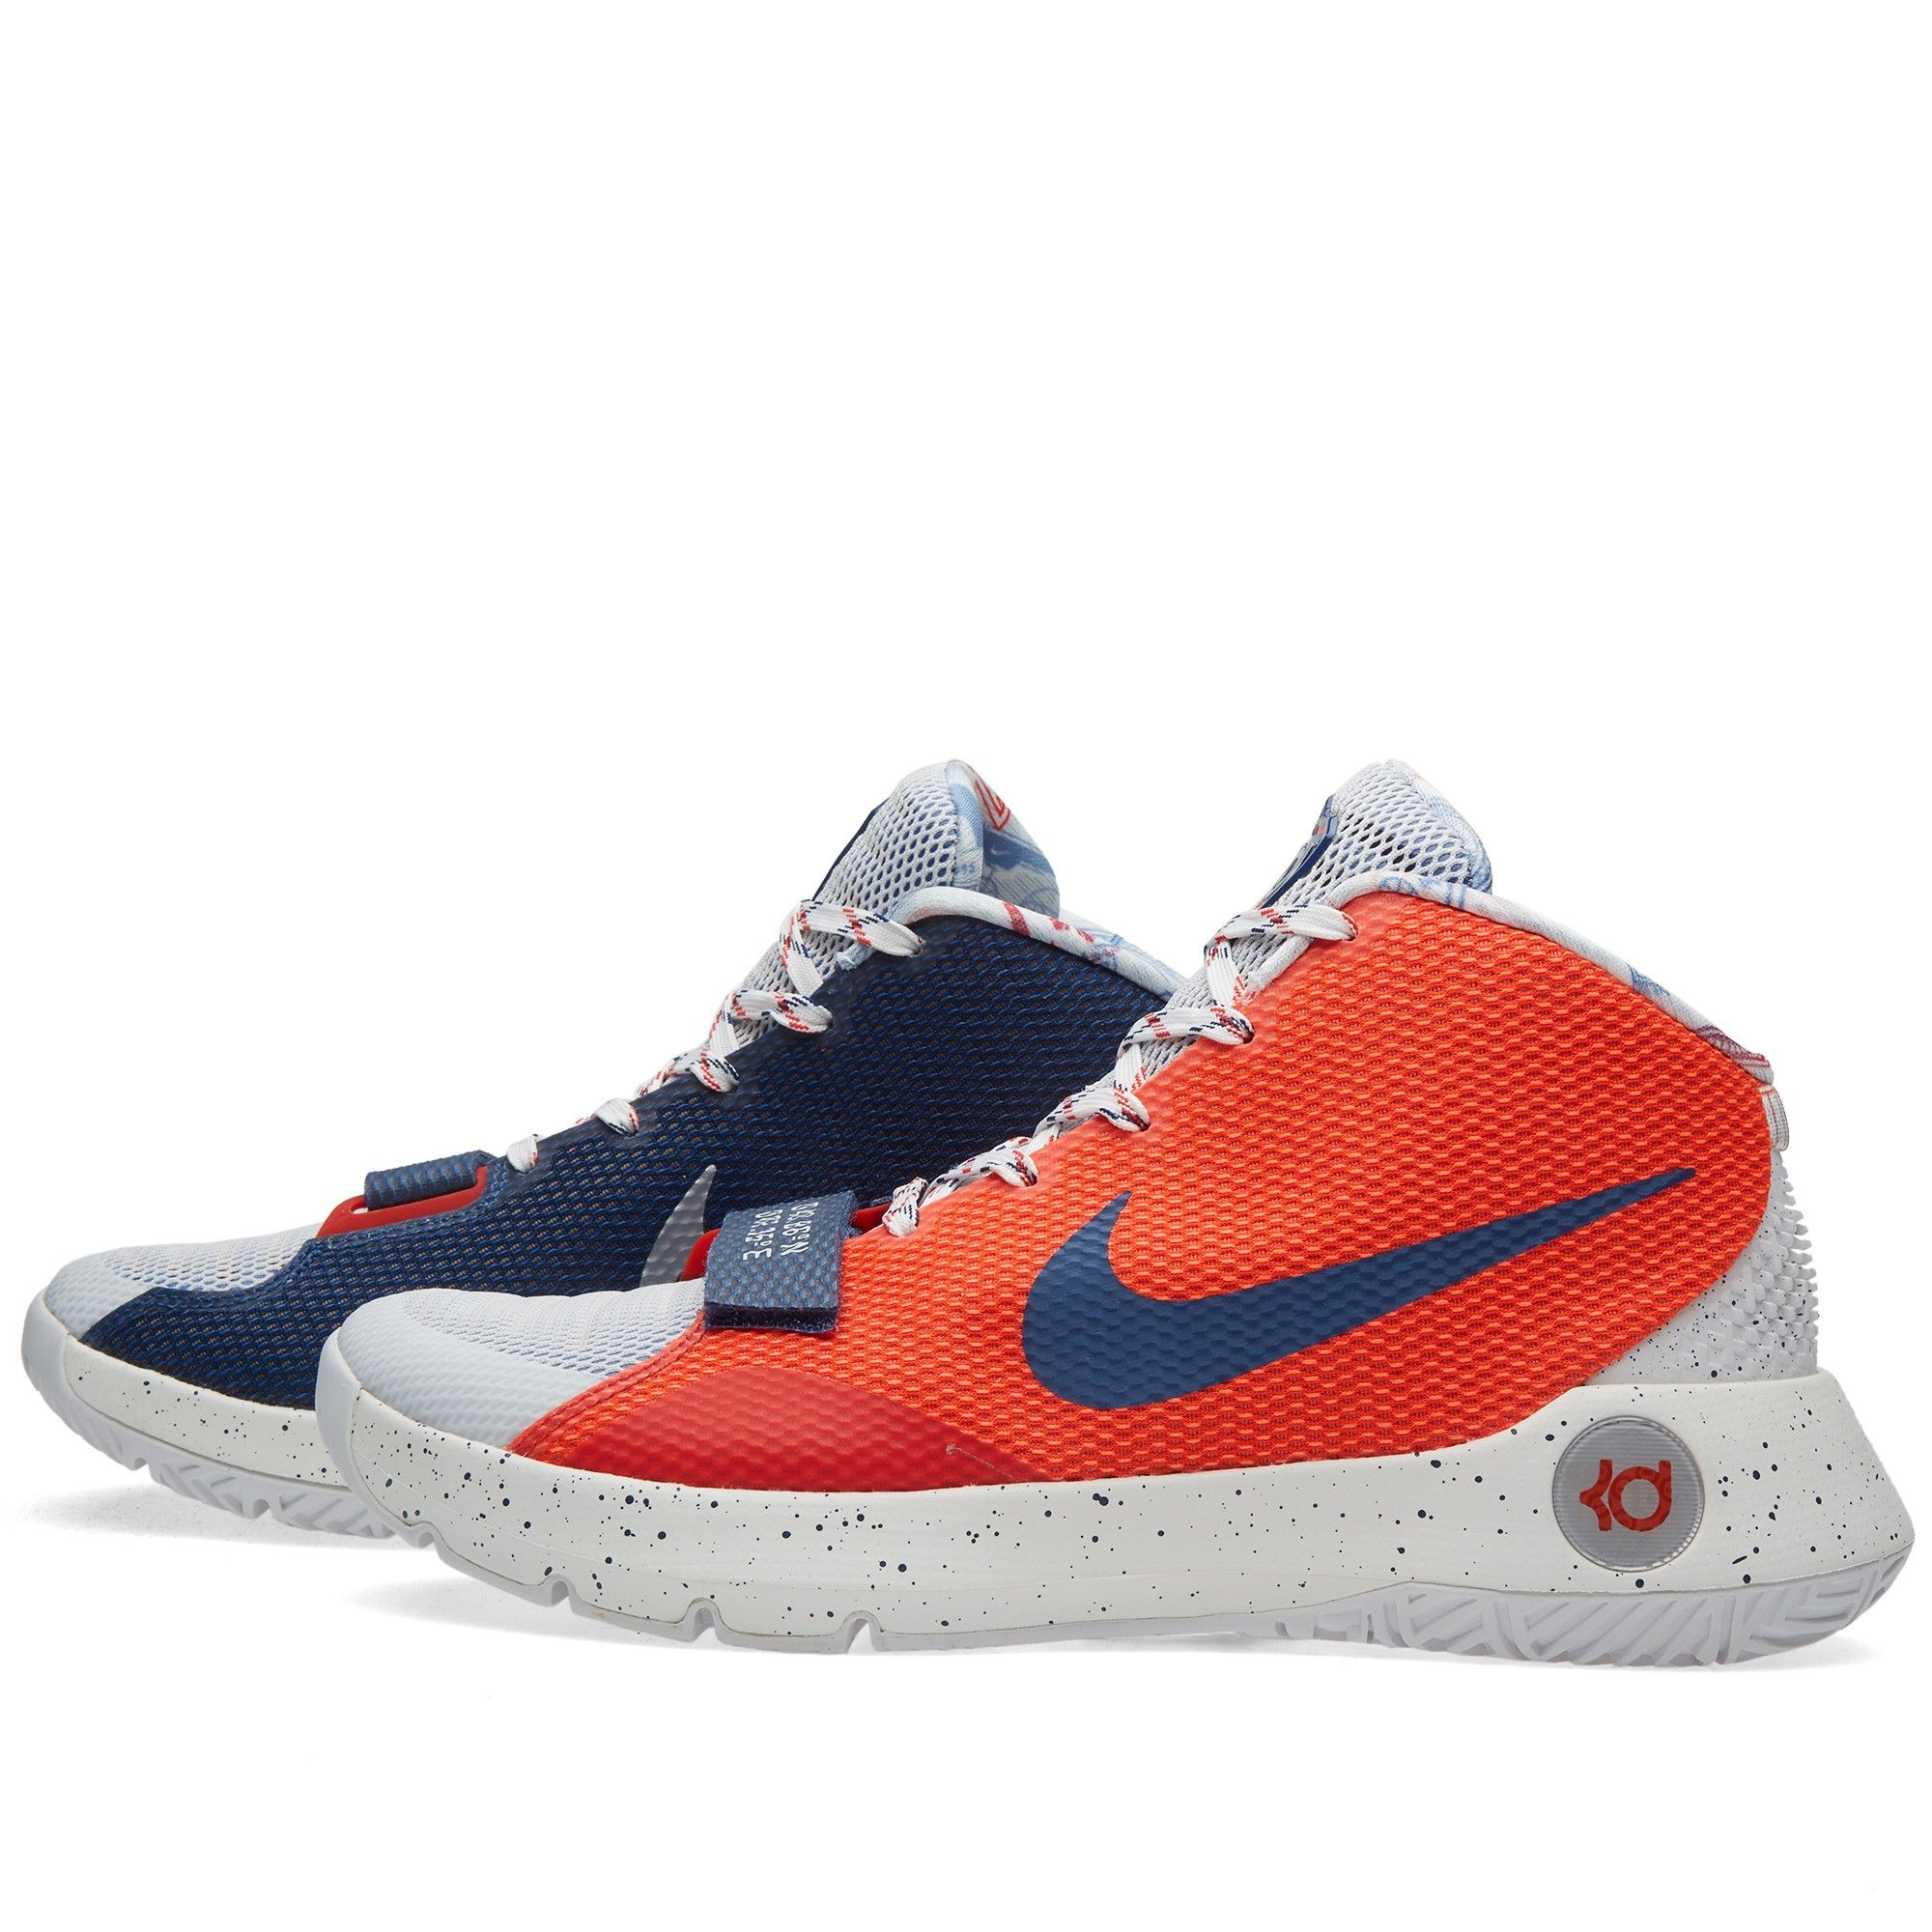 31a0a1edbe1 ... sale nike kd trey 5 iii ltd multi white 32fcd edf84